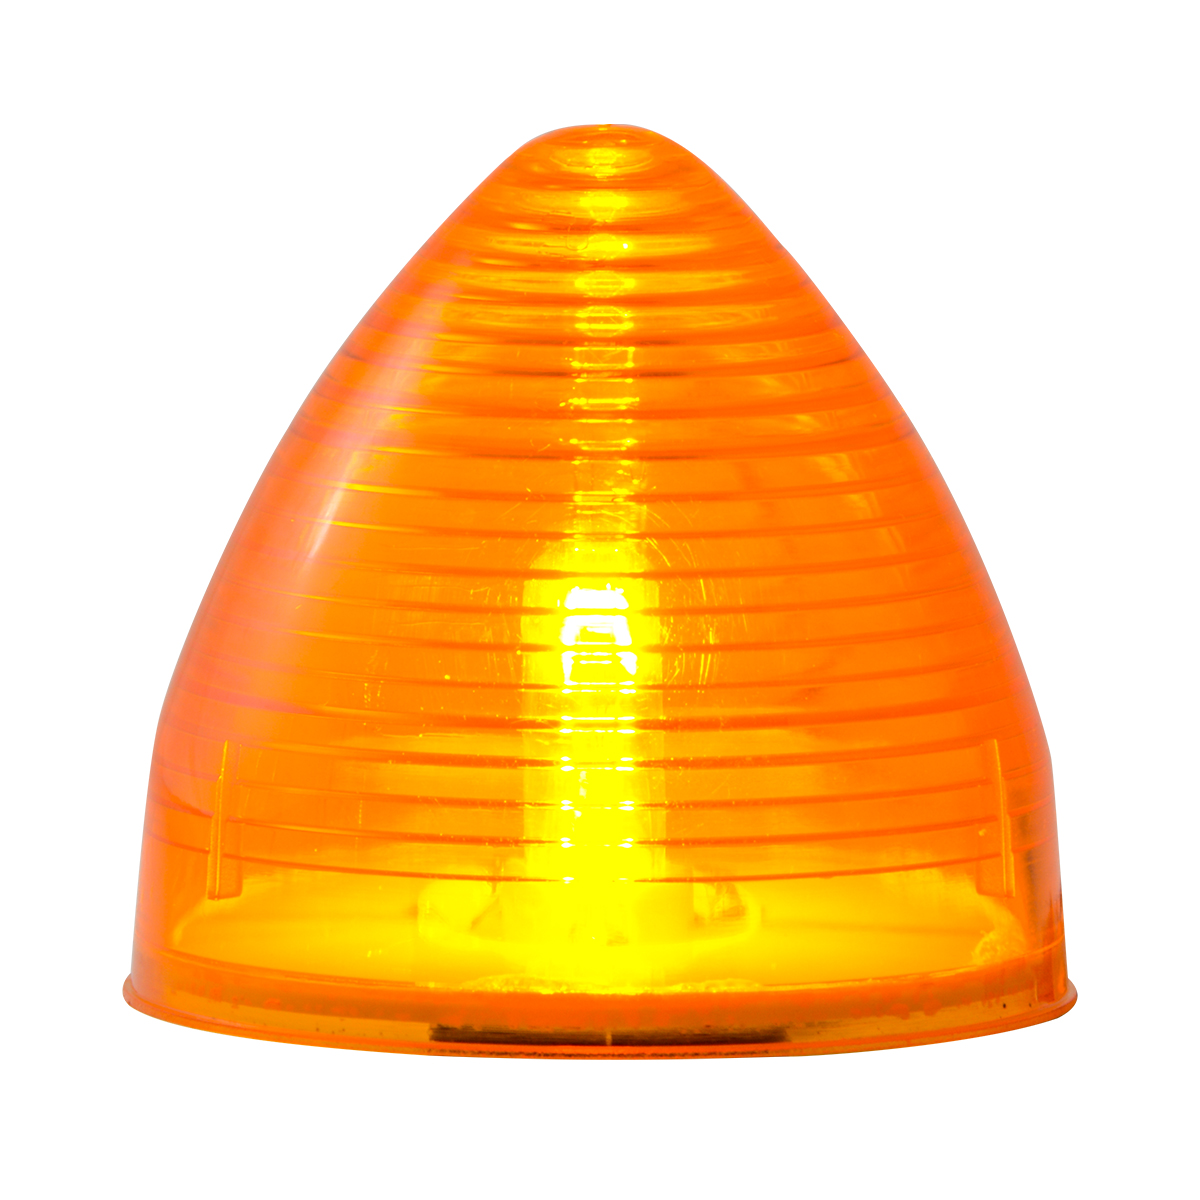 "#82830 2 ½"" Incandescent Beehive Amber/Amber Light"